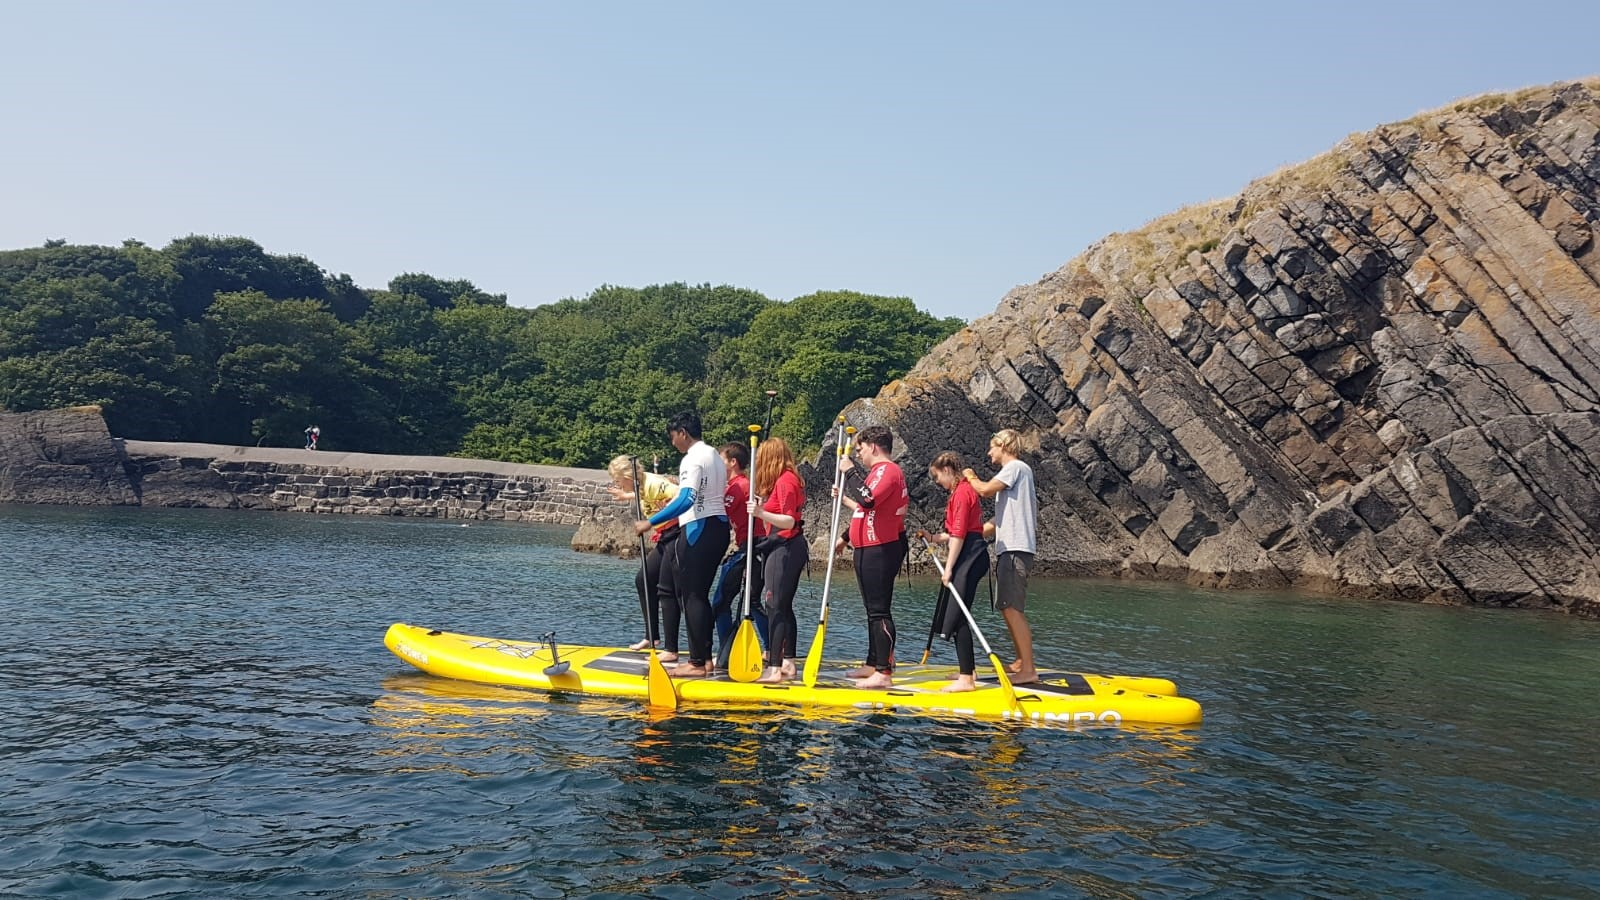 Paddle Boarding Courses In Pembrokeshire, Wales | Paddle Boarding Courses -Wales